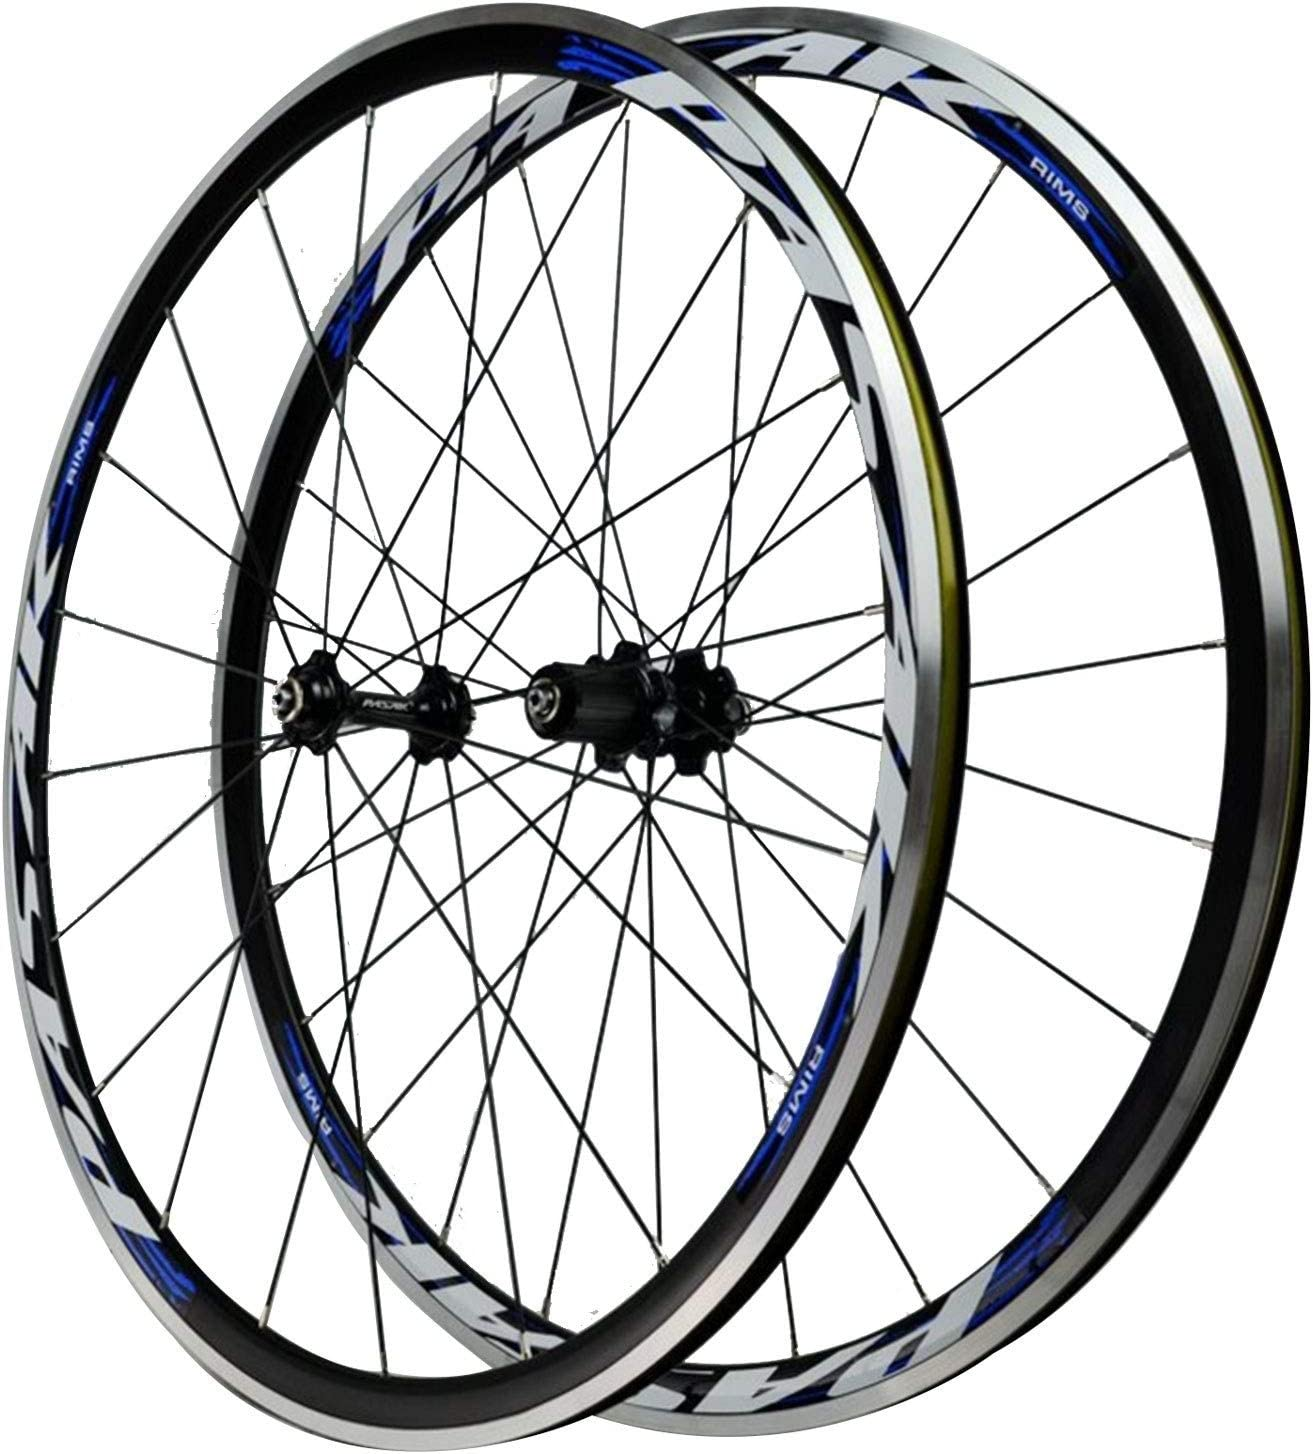 Import CHICTI 700C Bicycle Wheelset Double Wall Peilin Rim Bearin 4 MTB New arrival